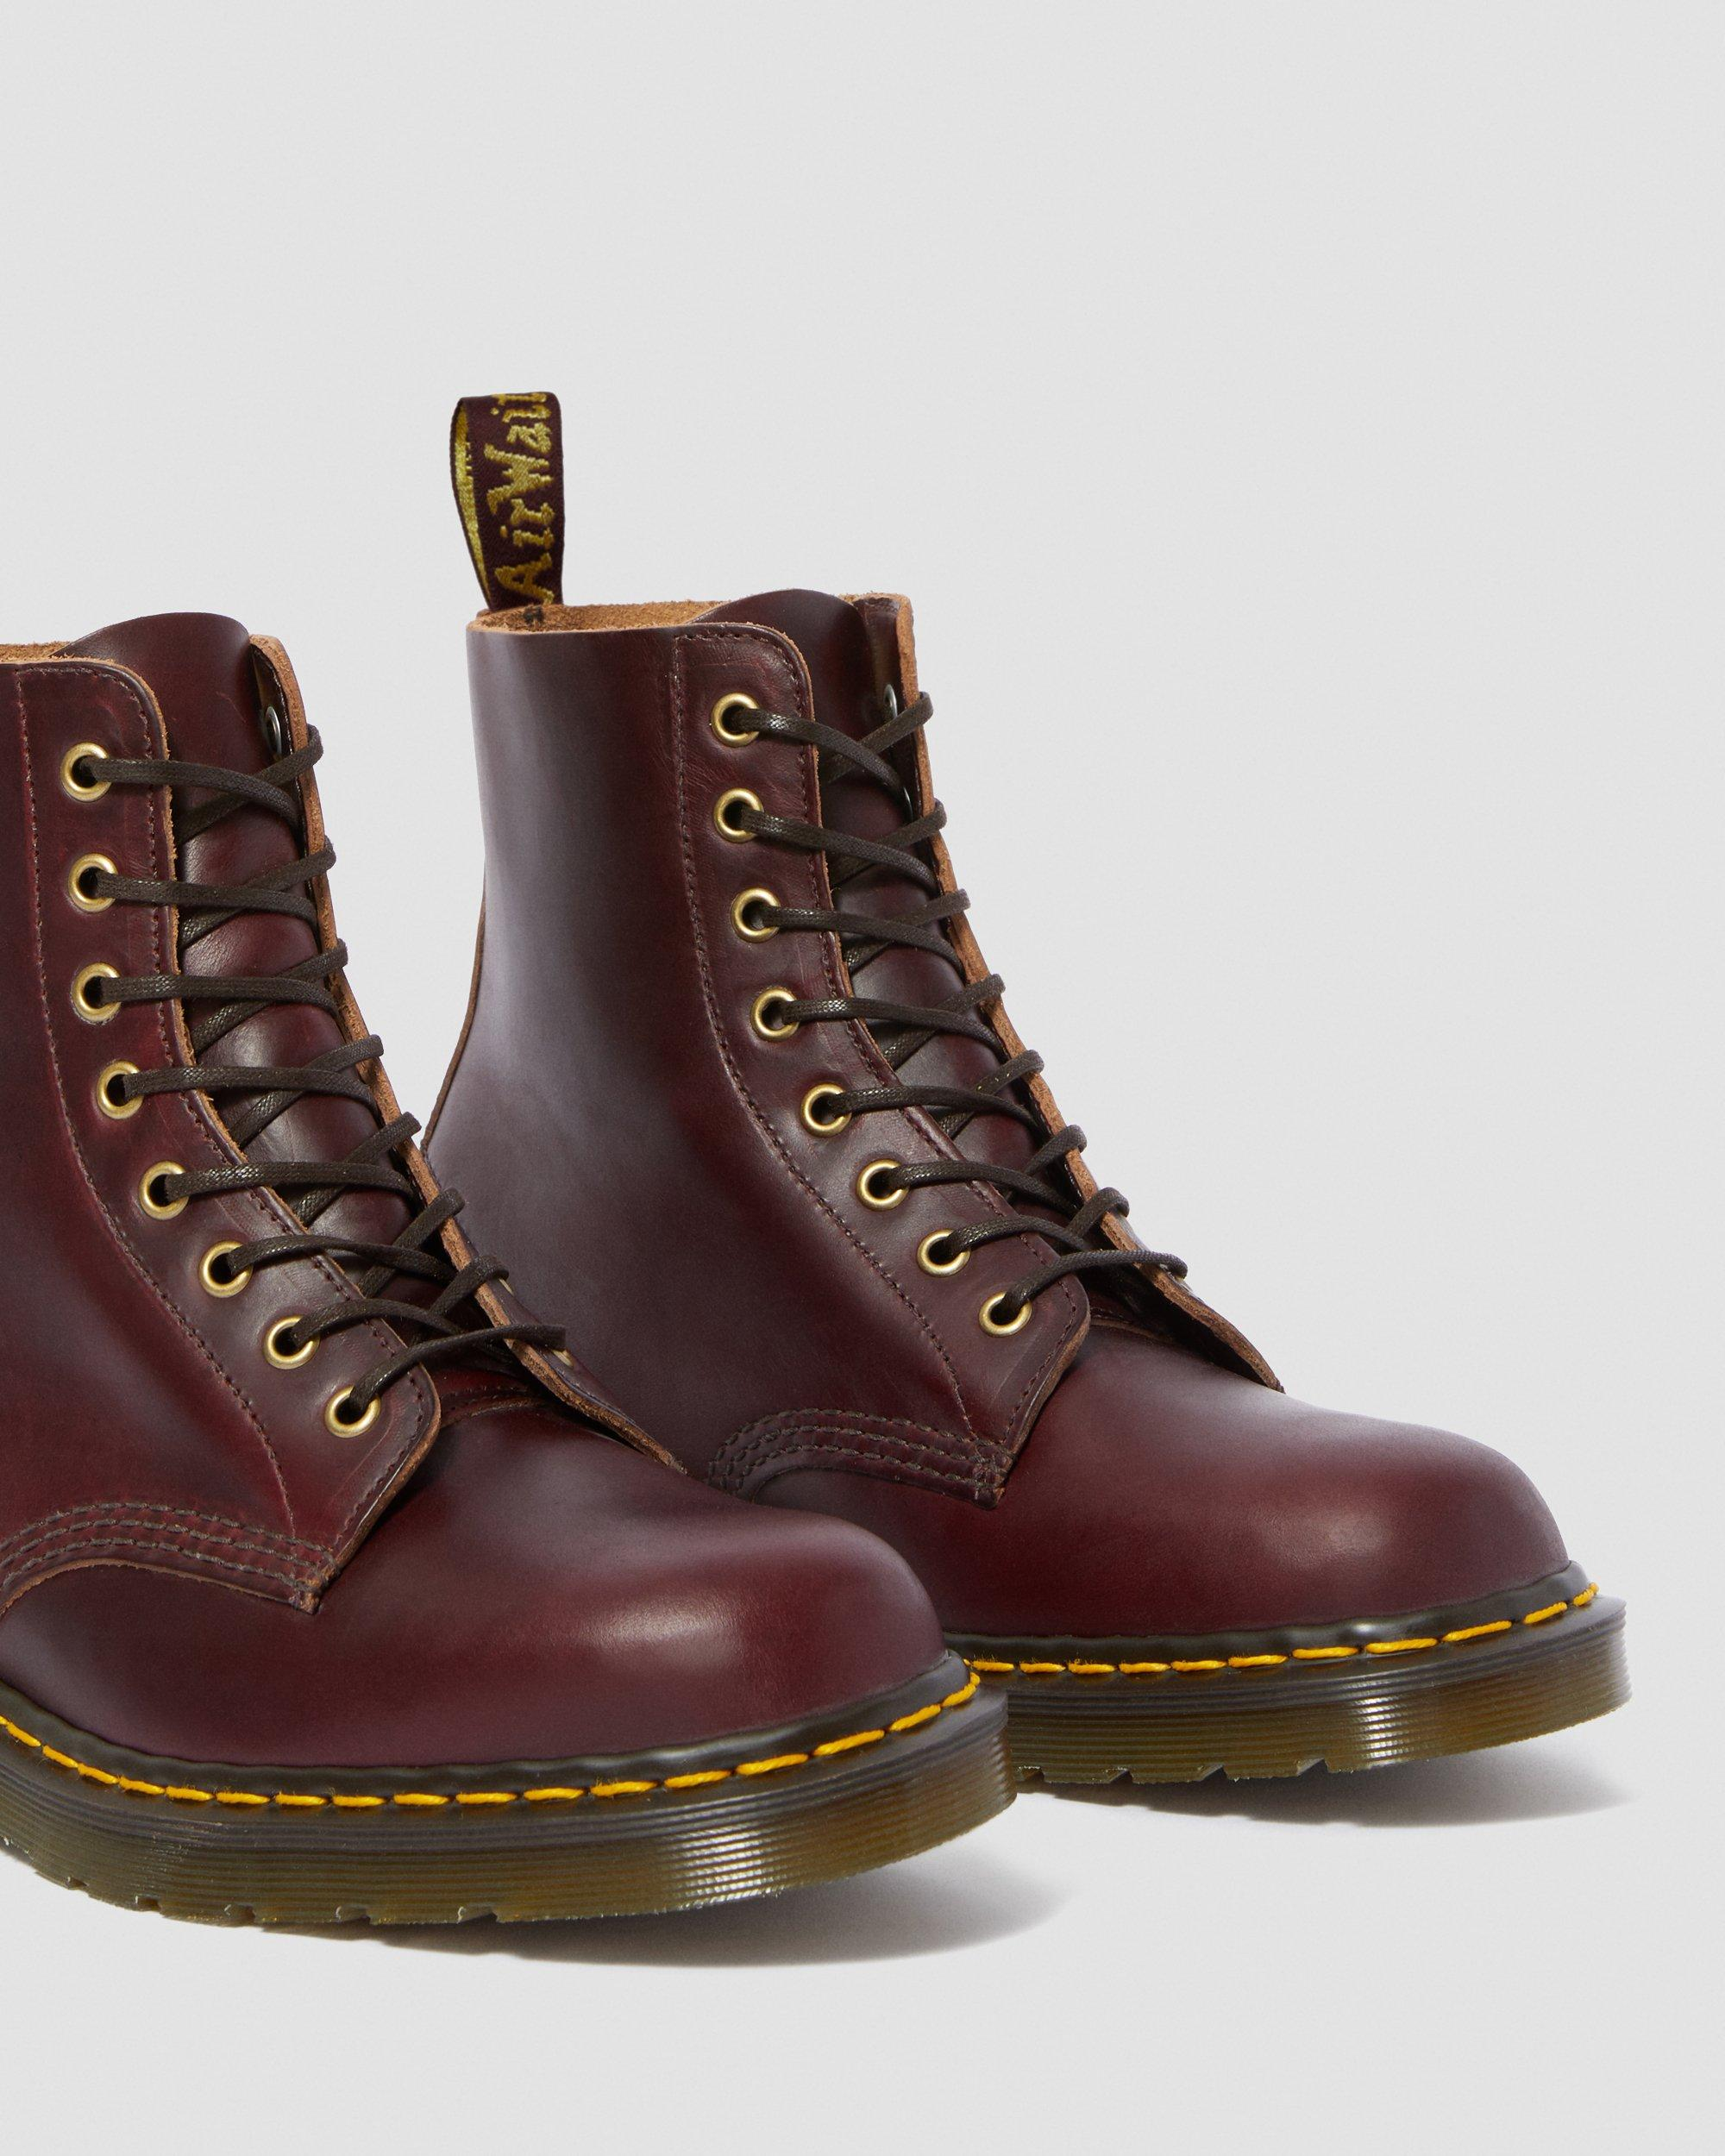 1460 PASCAL MADE IN ENGLAND CHROMEXCEL